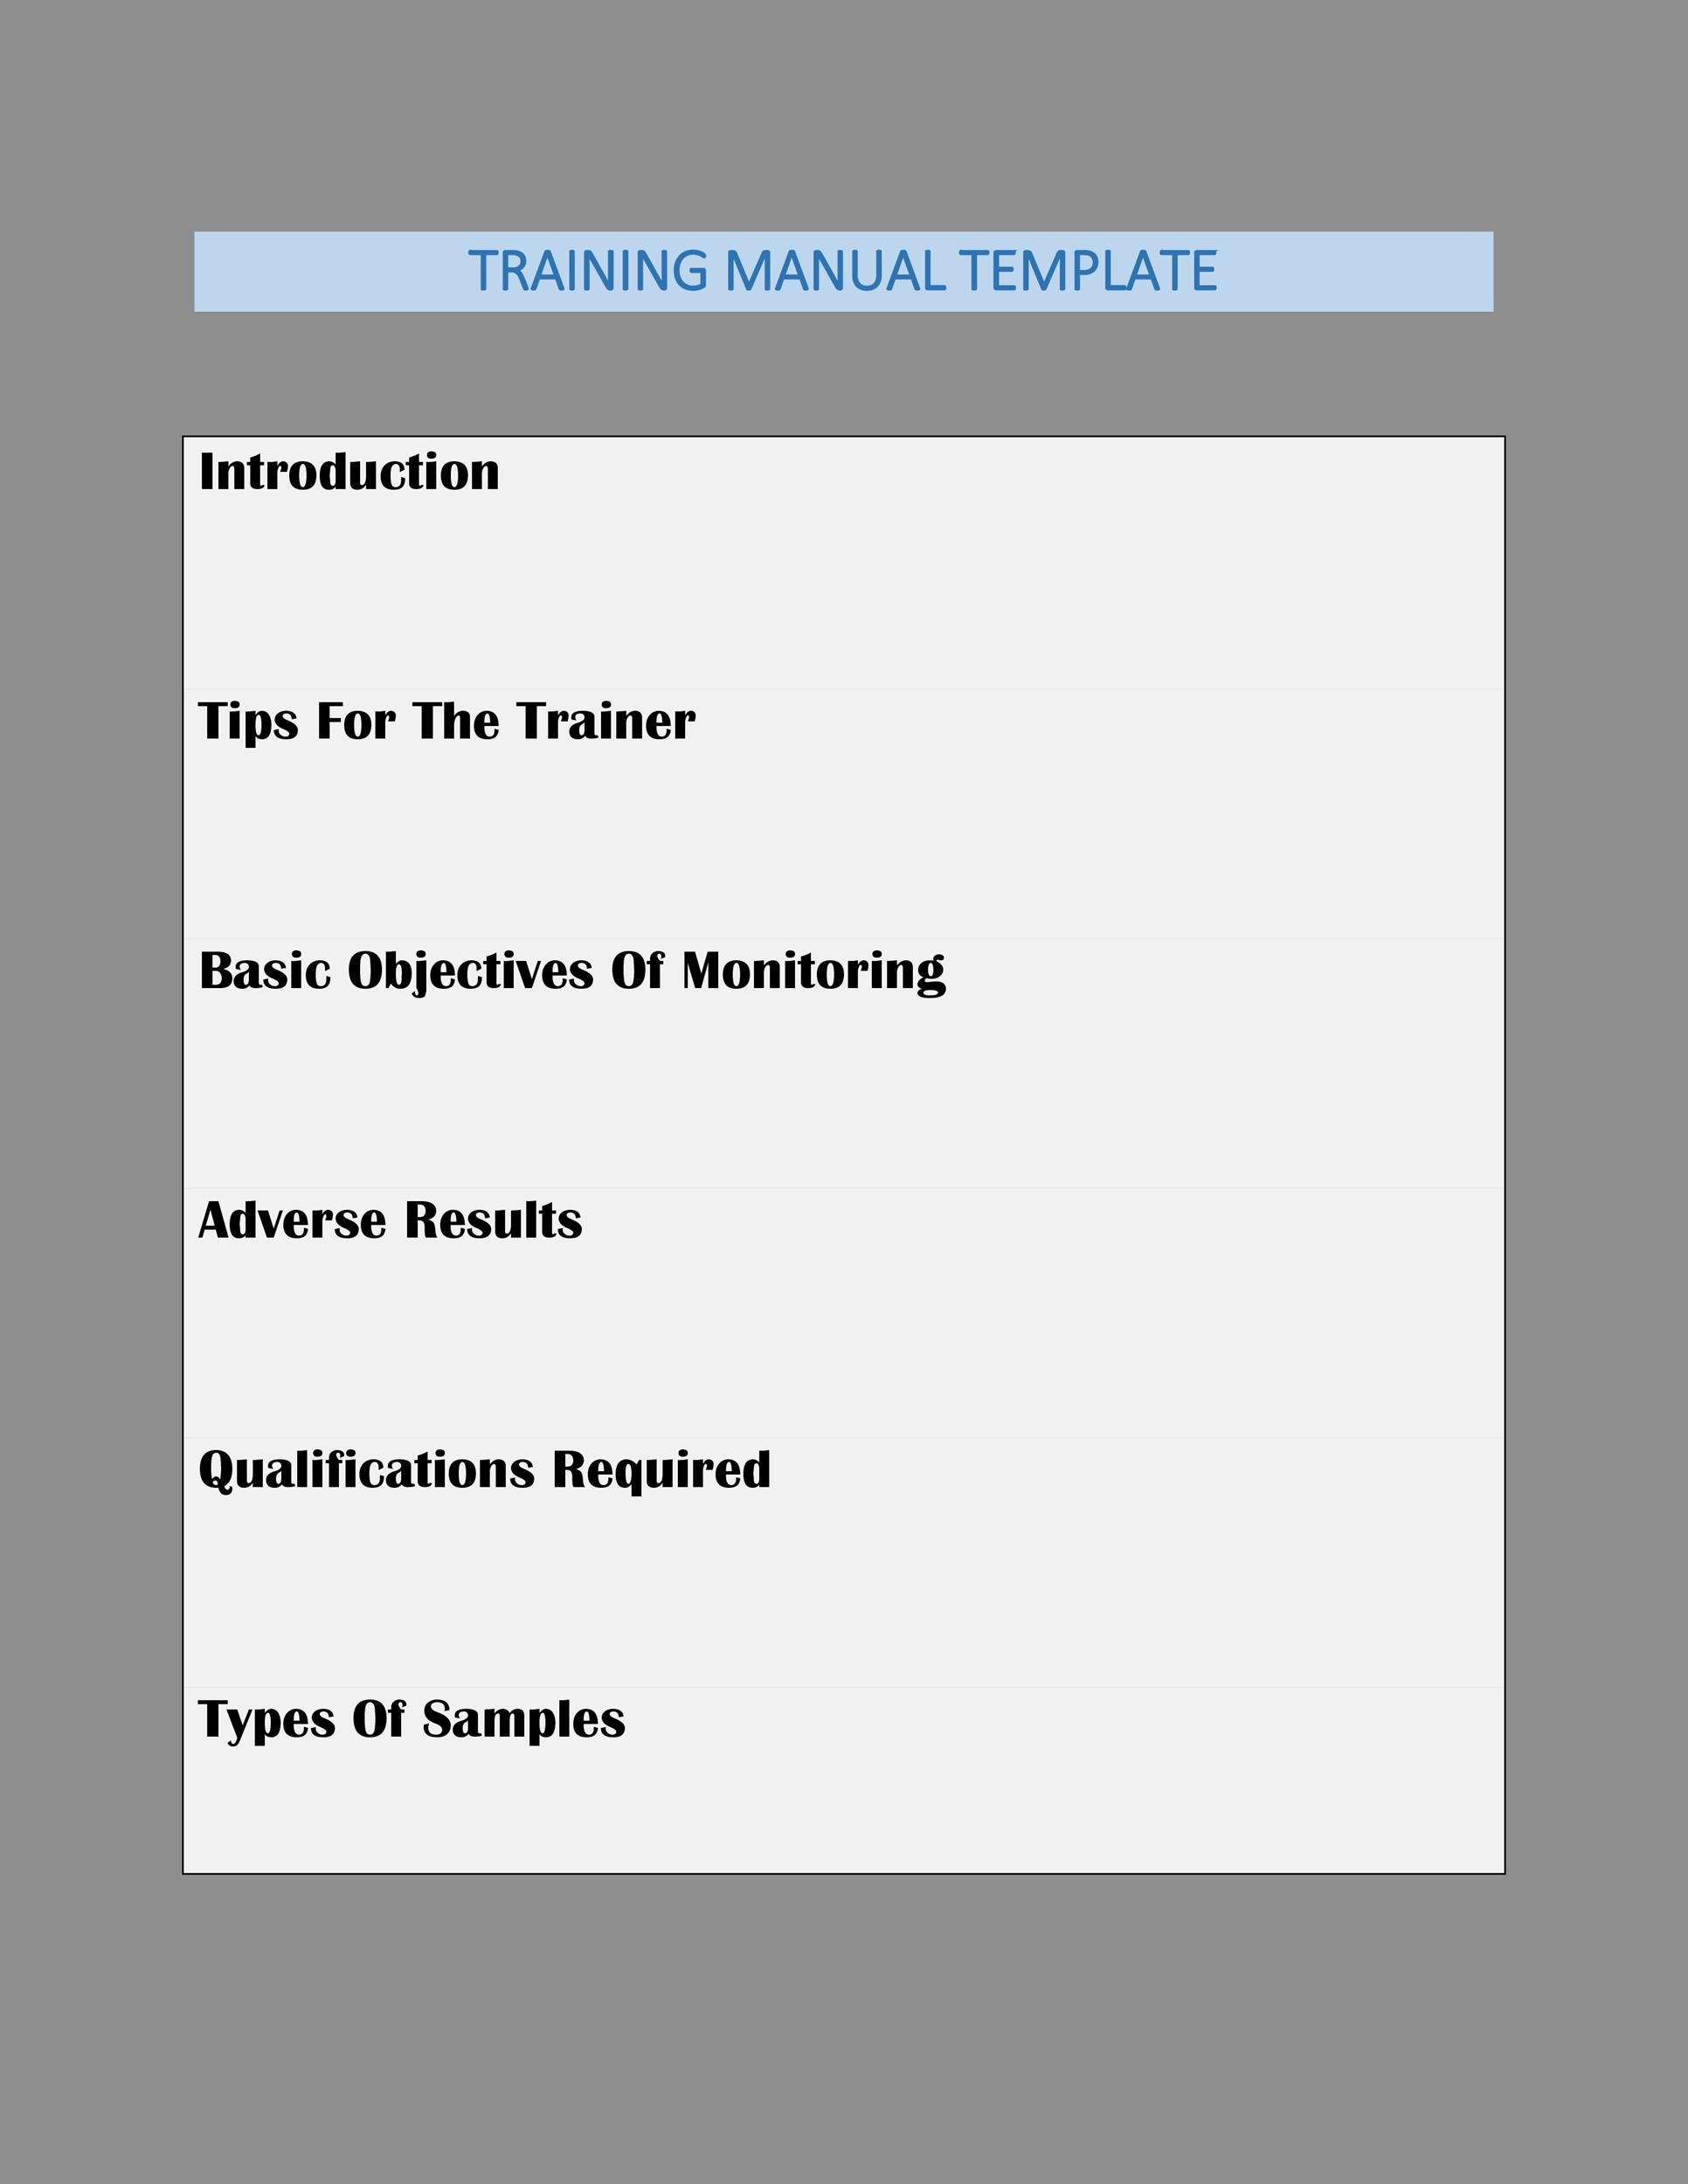 Free training manual template 25